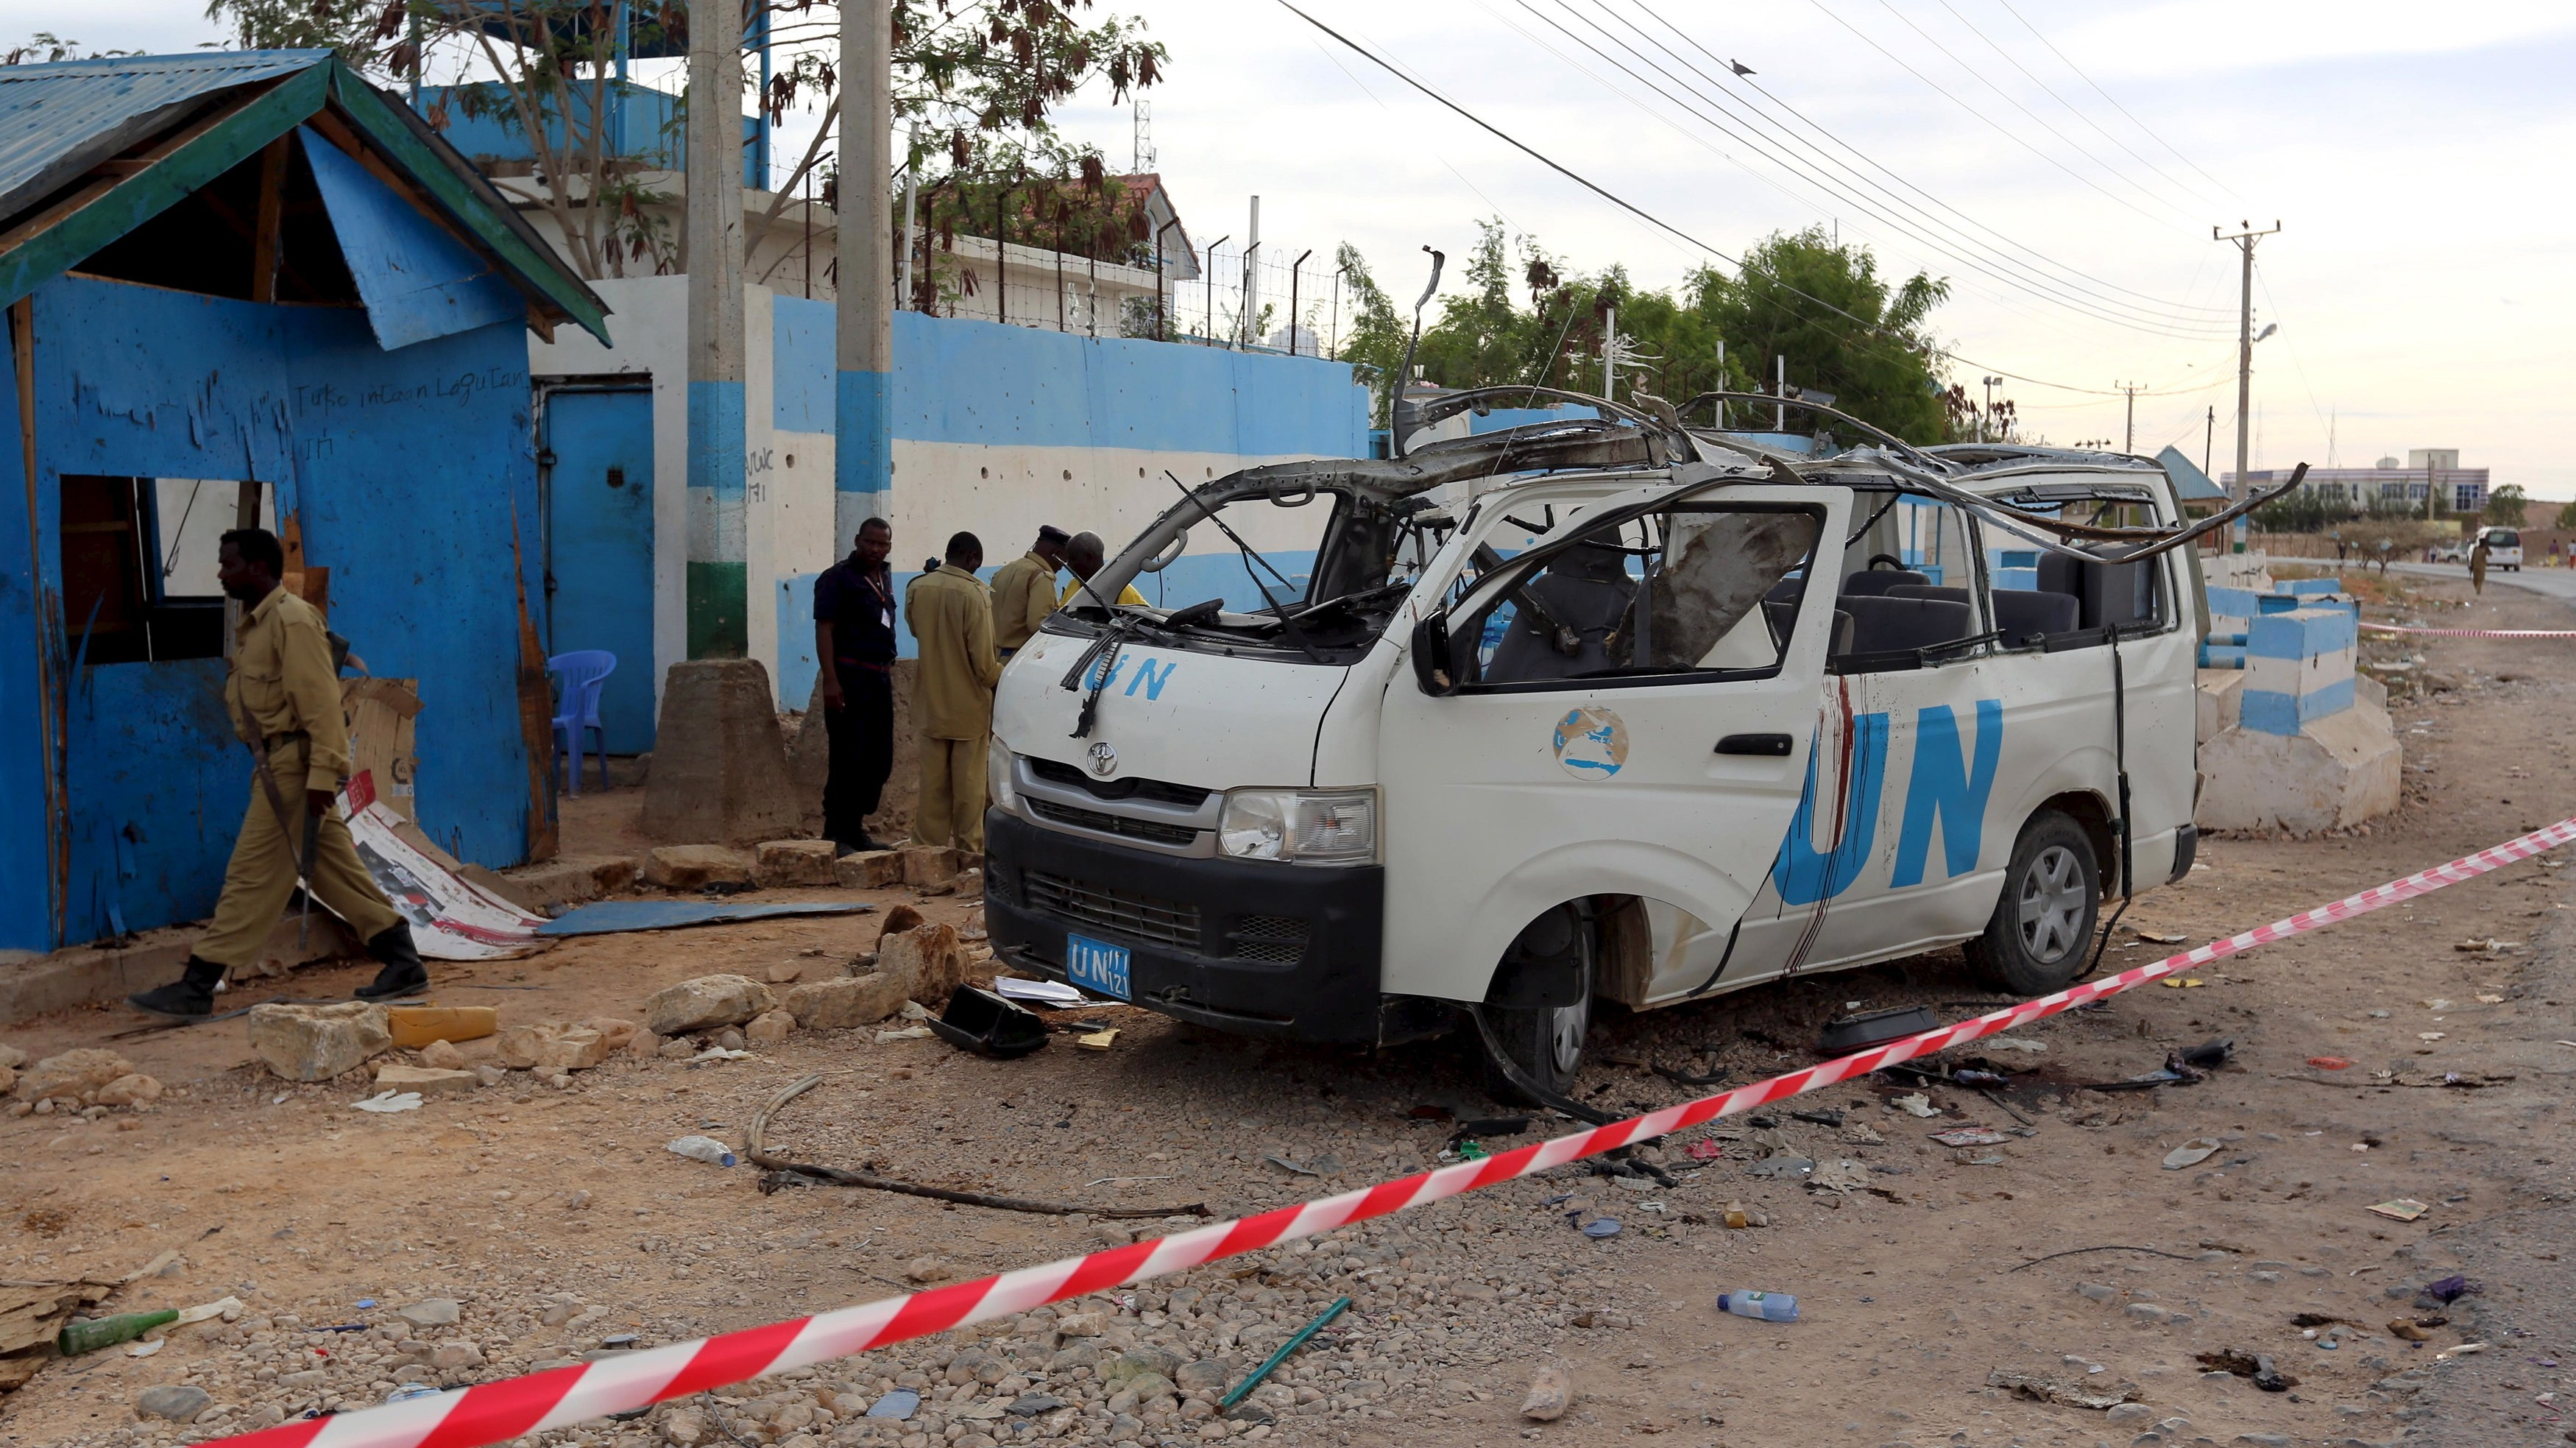 Graphic Photos Show Deadly Al Shabaab Attack on United Nations Vehicle in Puntland